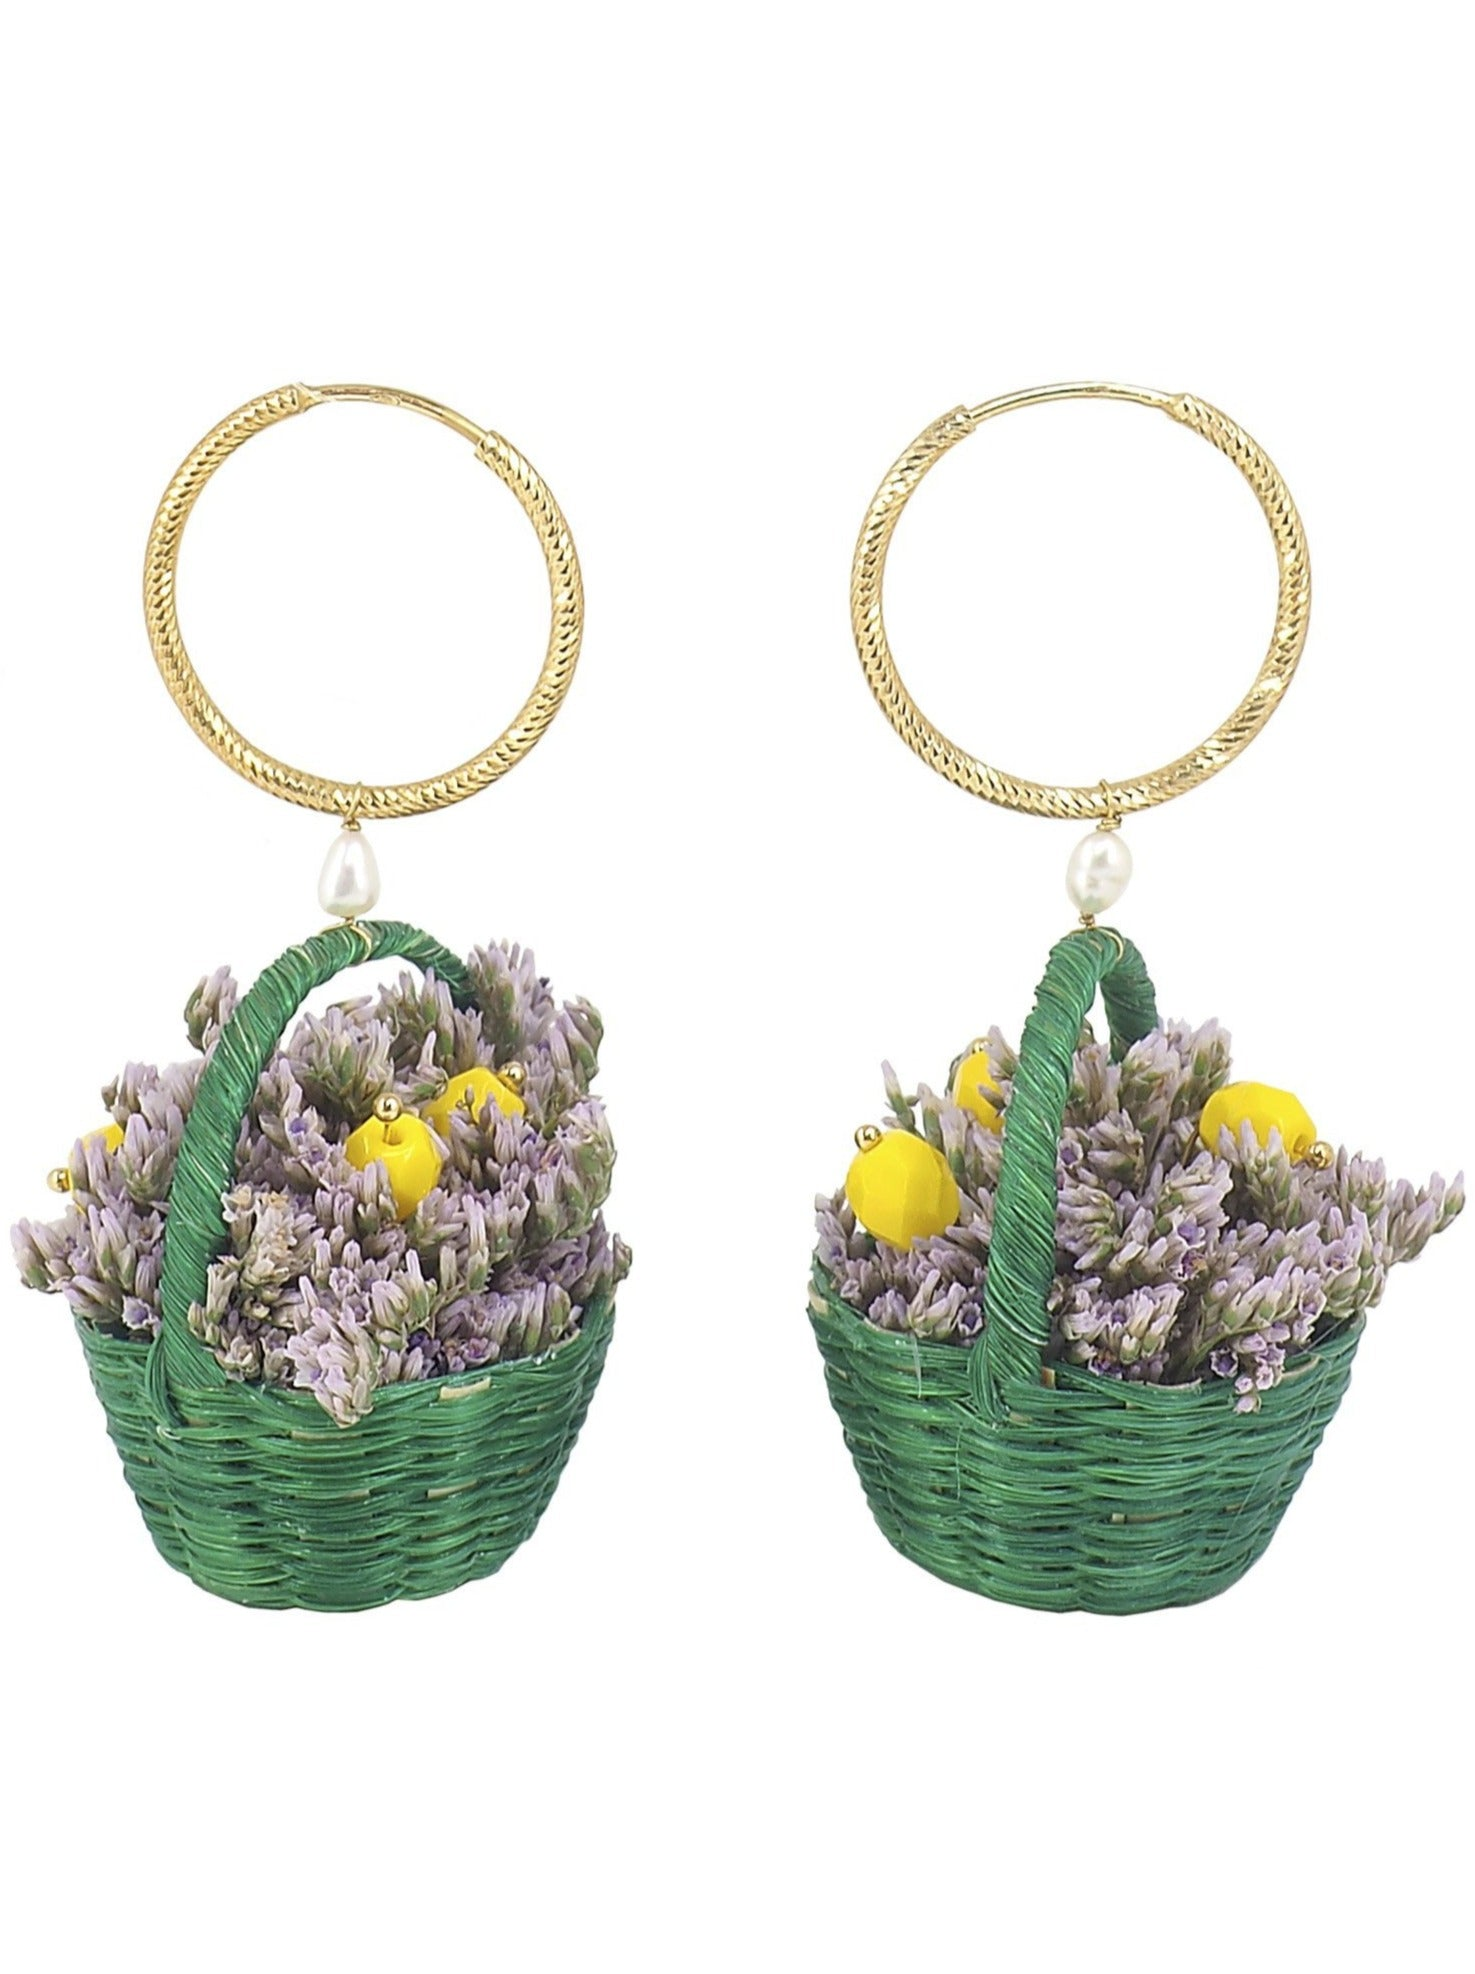 Little Basket of Limonium  Hoop Earrings - Green -These Beautiful and Unique Earrings are a conversation starter for sure so when you get asked about them you can tell your friends that these are the result of the designer´s love for two distant lands. The one where Pola was born is represented by the cutest little baskets handmade by artisans in Colombia. And the Island where her heart is set, Mallorca, is represented by the exquisite Limonium that grows by the Mediterranean Sea.